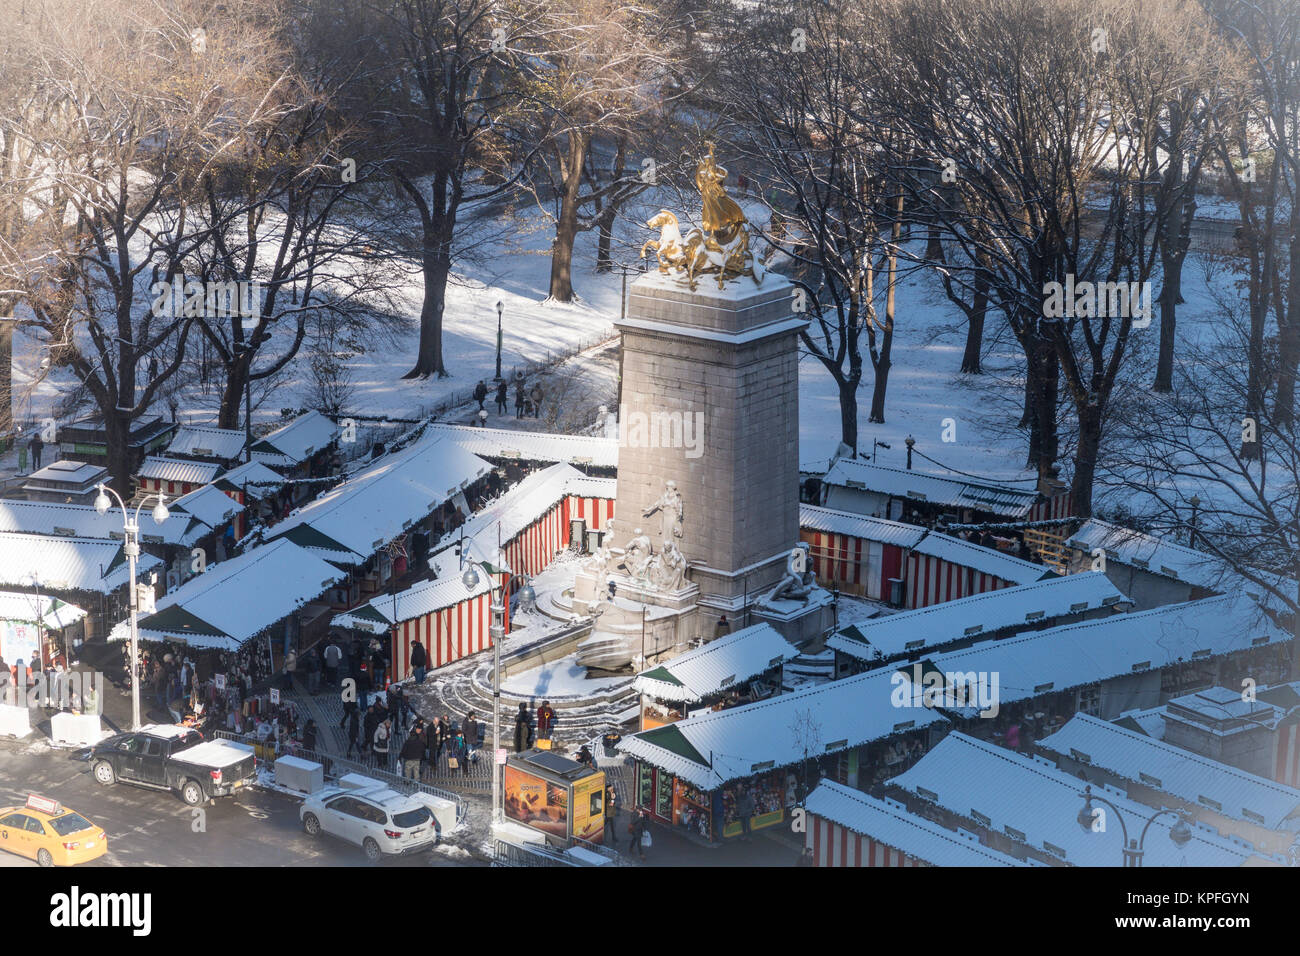 Maine Monument and Holiday Market at Merchant's Gate, Columbus Circle, NYC, USA - Stock Image